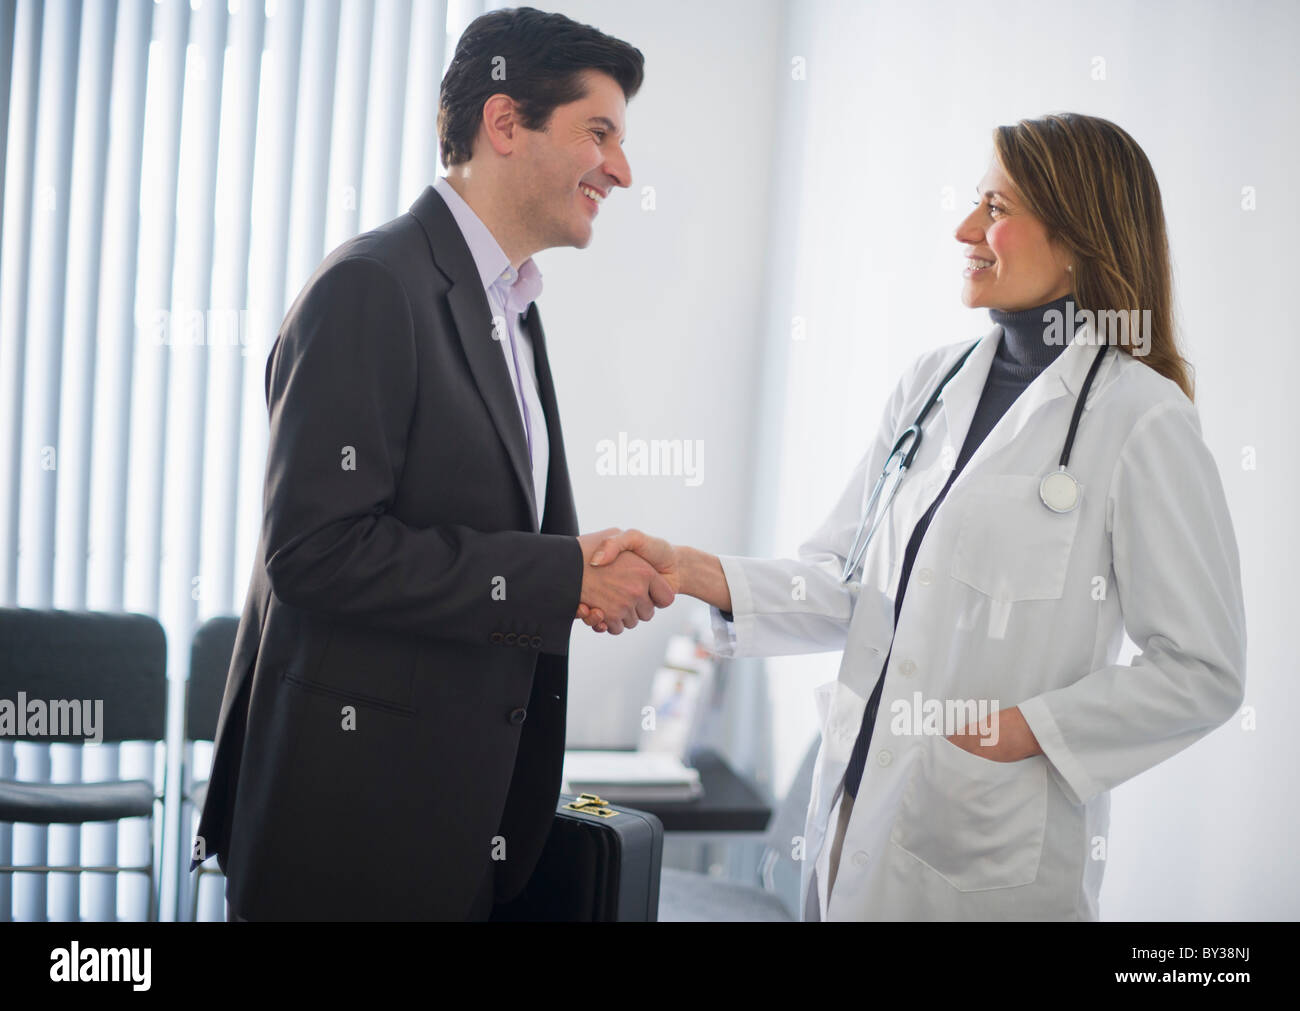 pharmaceutical s representative stock photos pharmaceutical usa new jersey jersey city medical s representative shaking hands female doctor